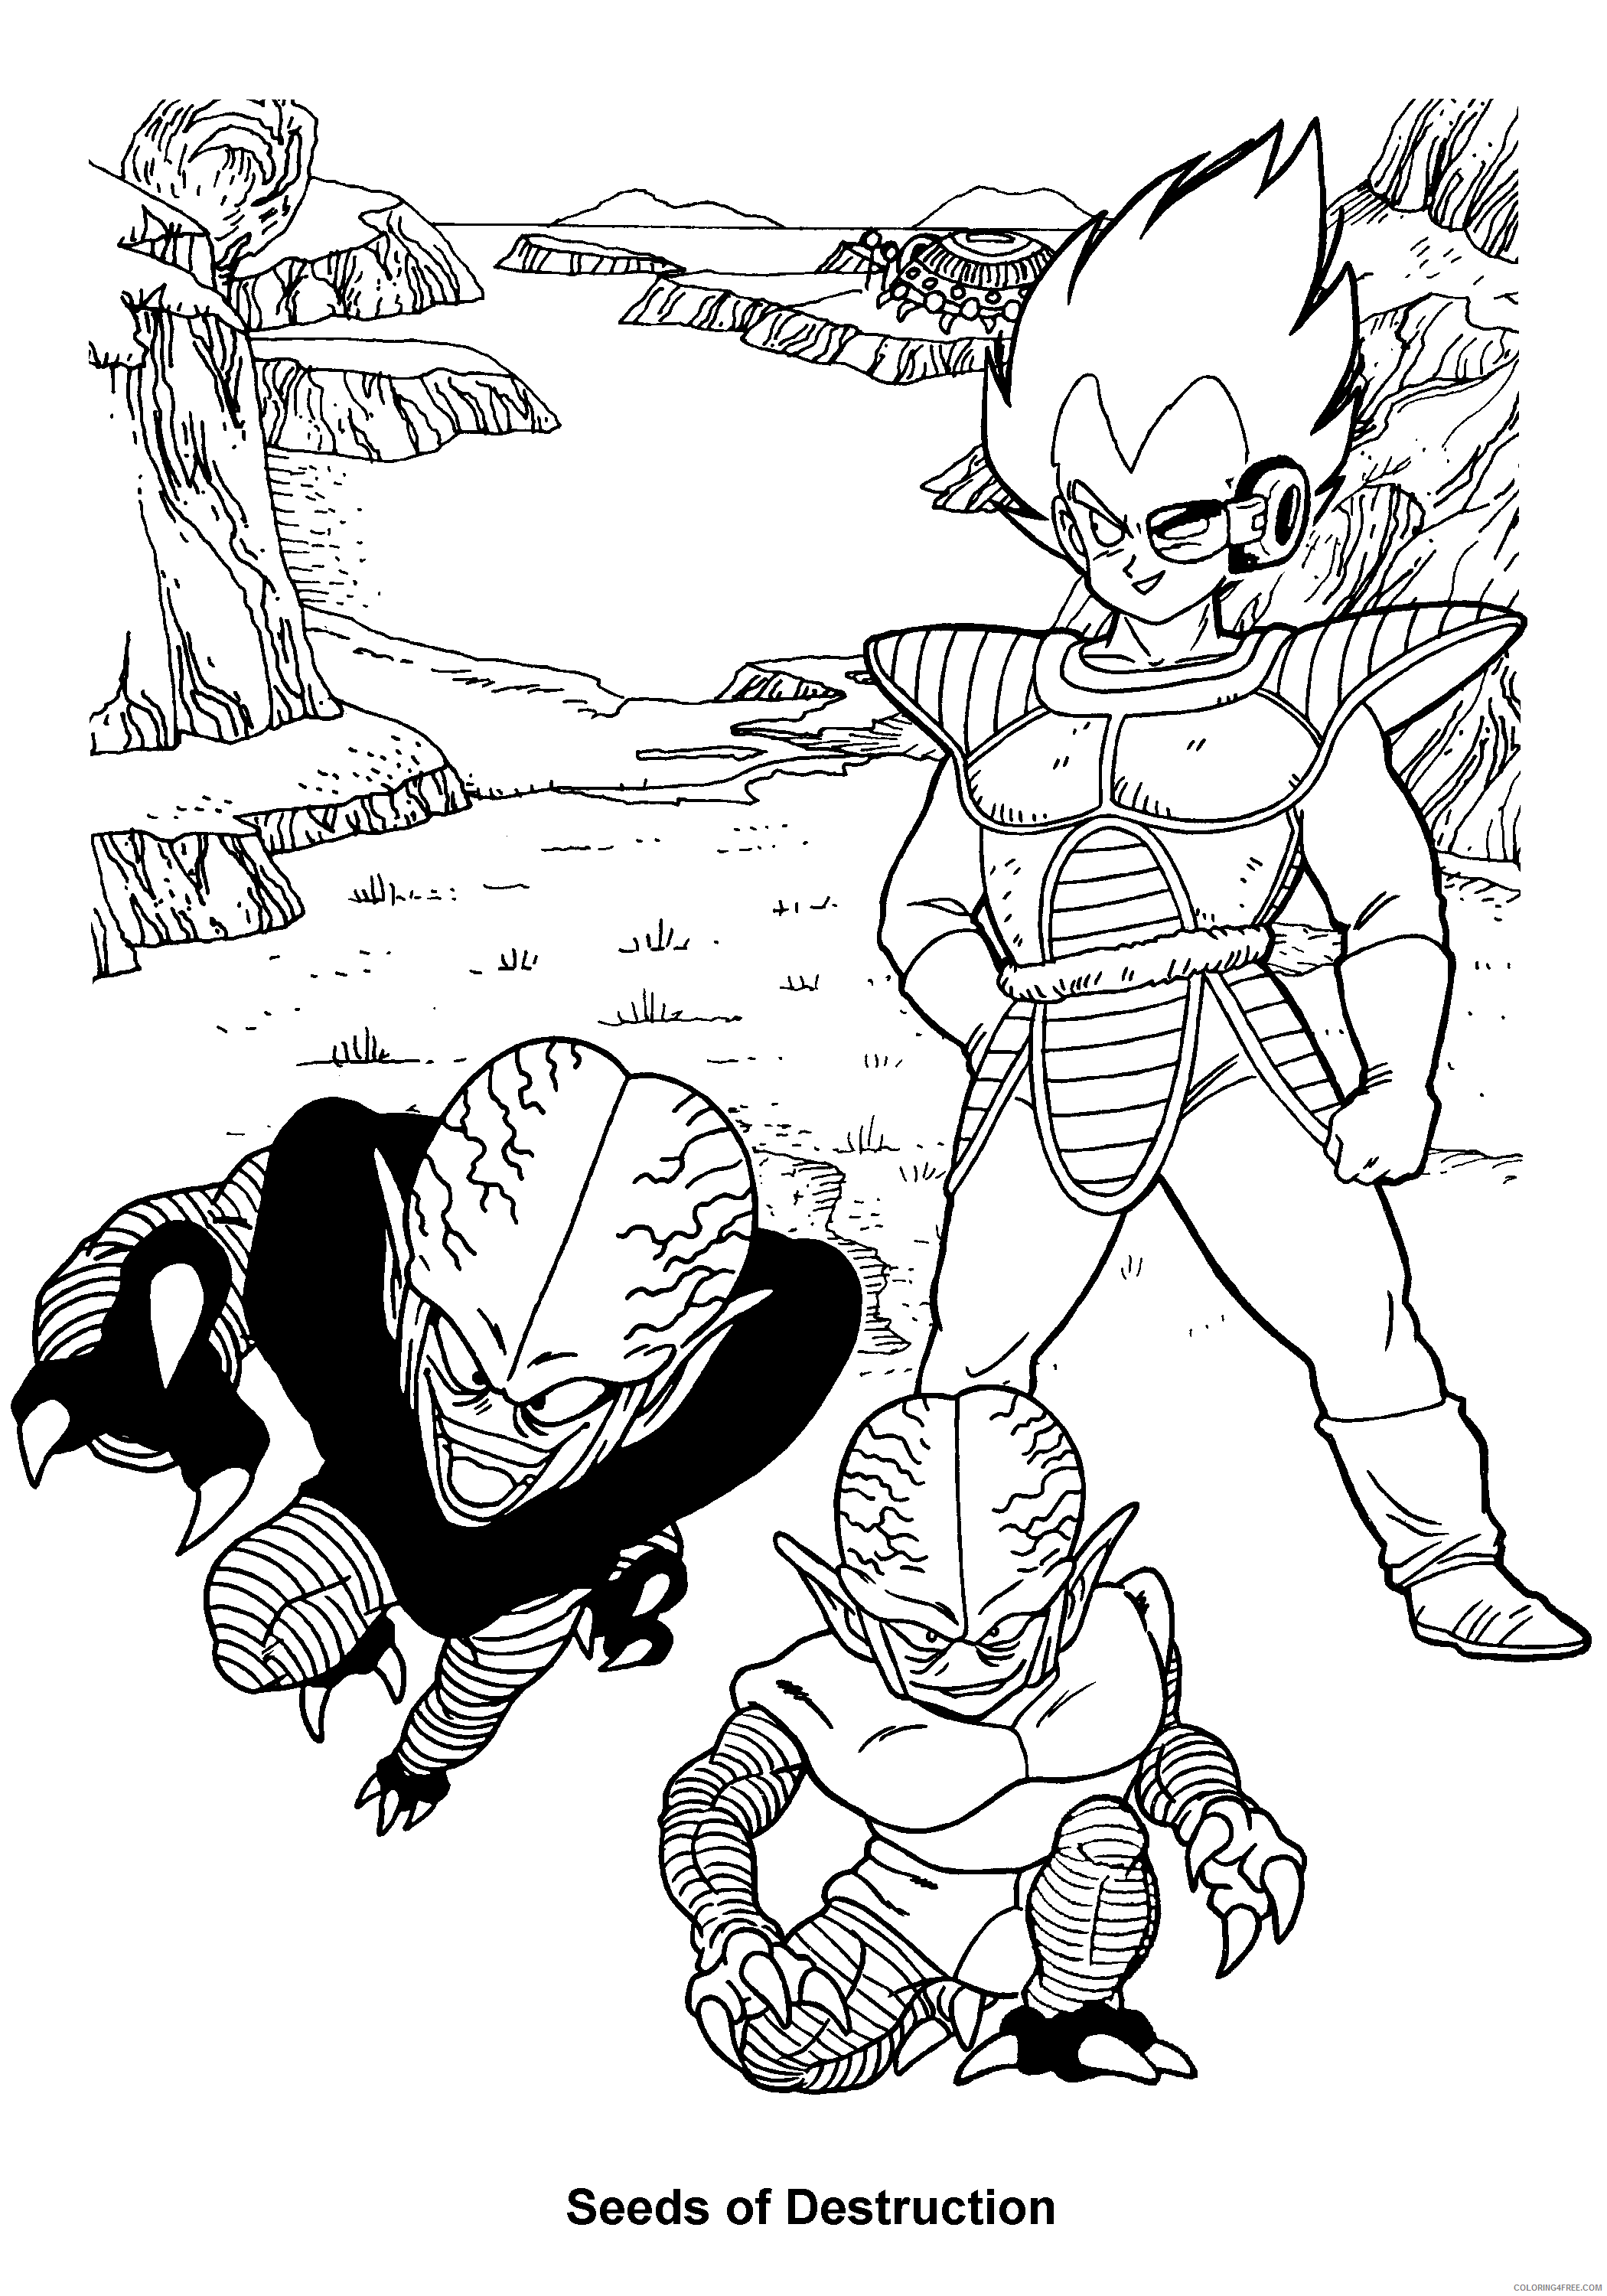 037 dragon ball z seeds of destruction Printable Coloring4free